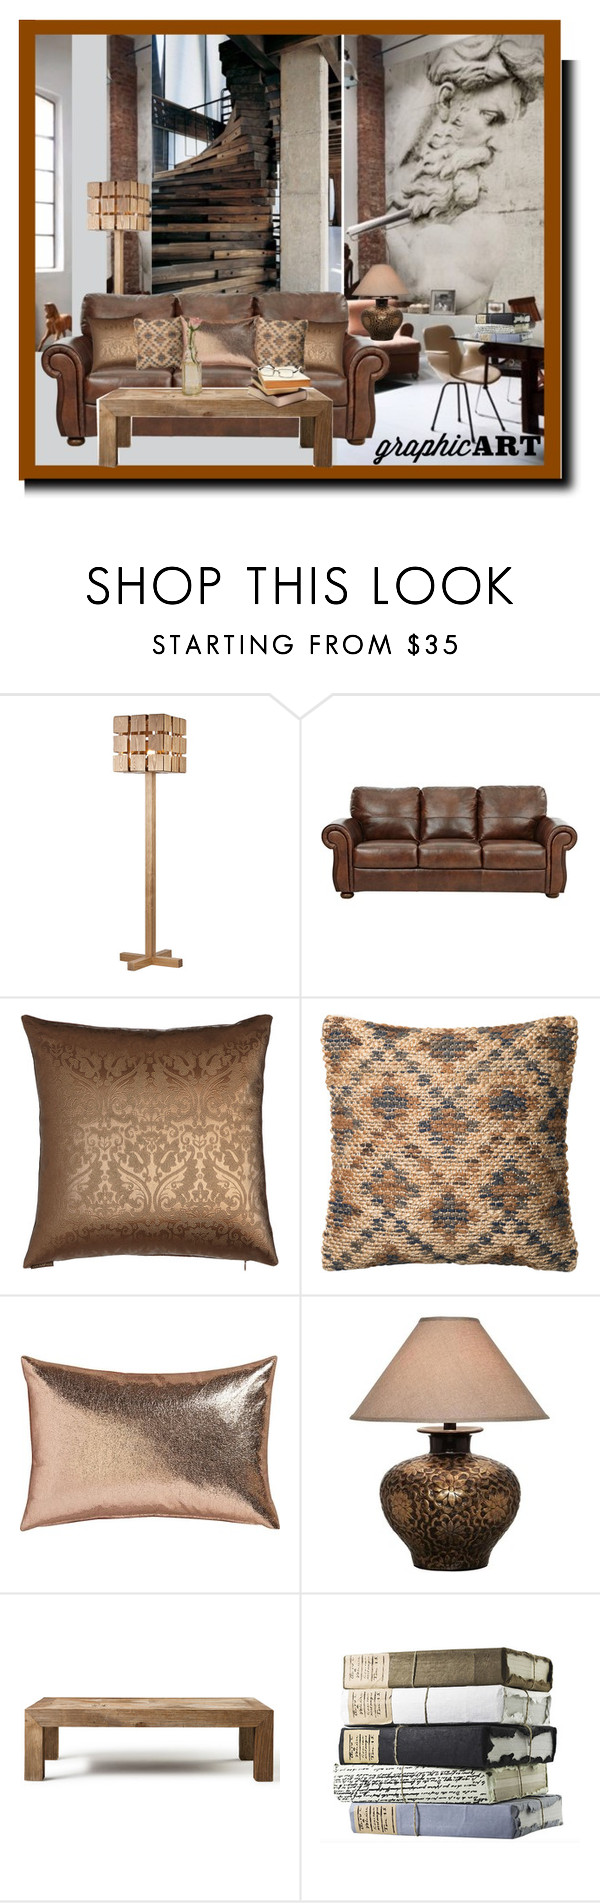 """""""Senza titolo #948"""" by barbara-gennari ❤ liked on Polyvore featuring interior, interiors, interior design, home, home decor, interior decorating, Loloi Rugs, CB2, Flamant and Cultural Intrigue"""